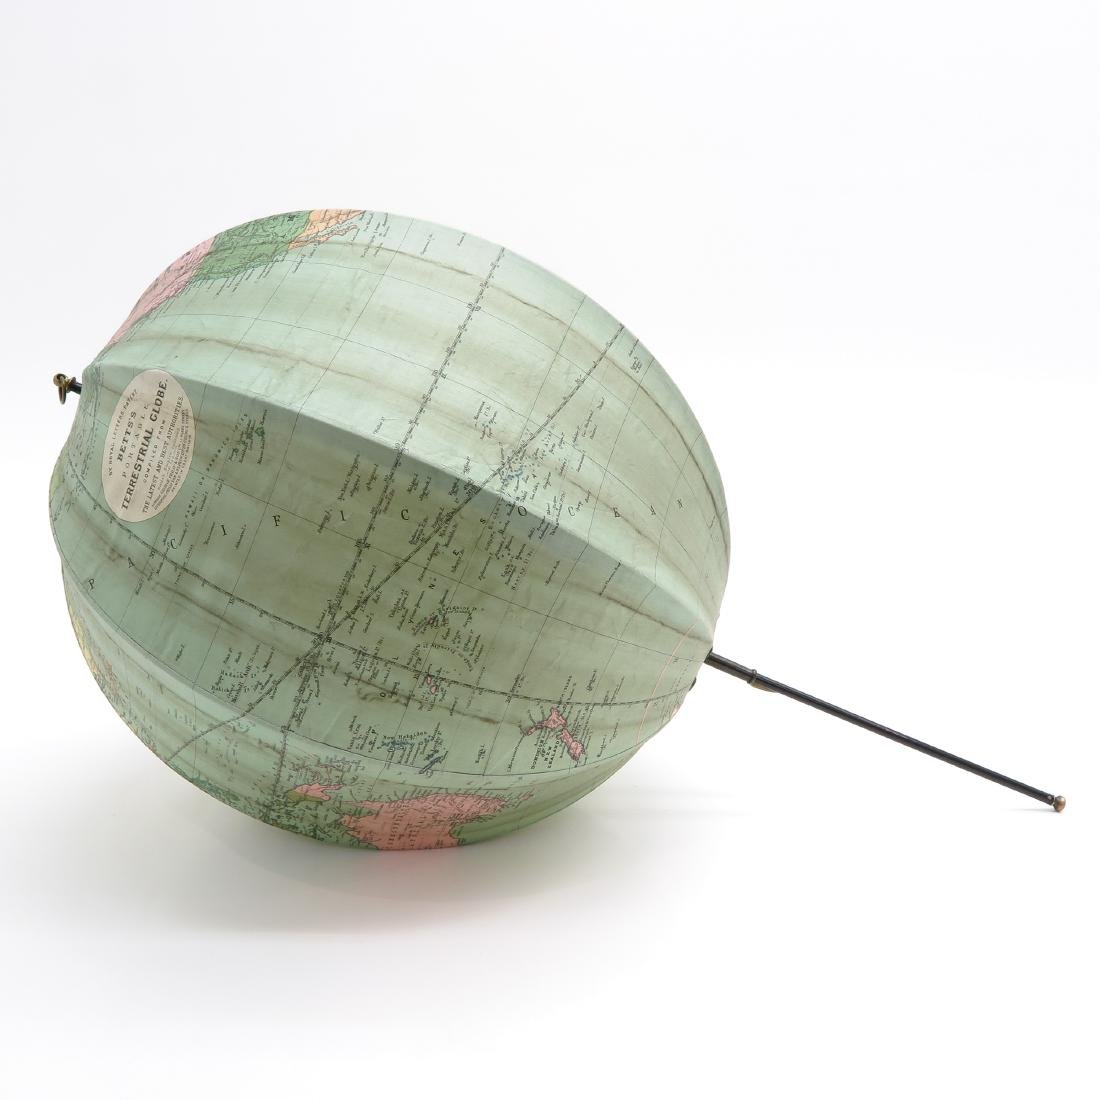 A Bett's Portable Terrestrial Globe with Box 1925